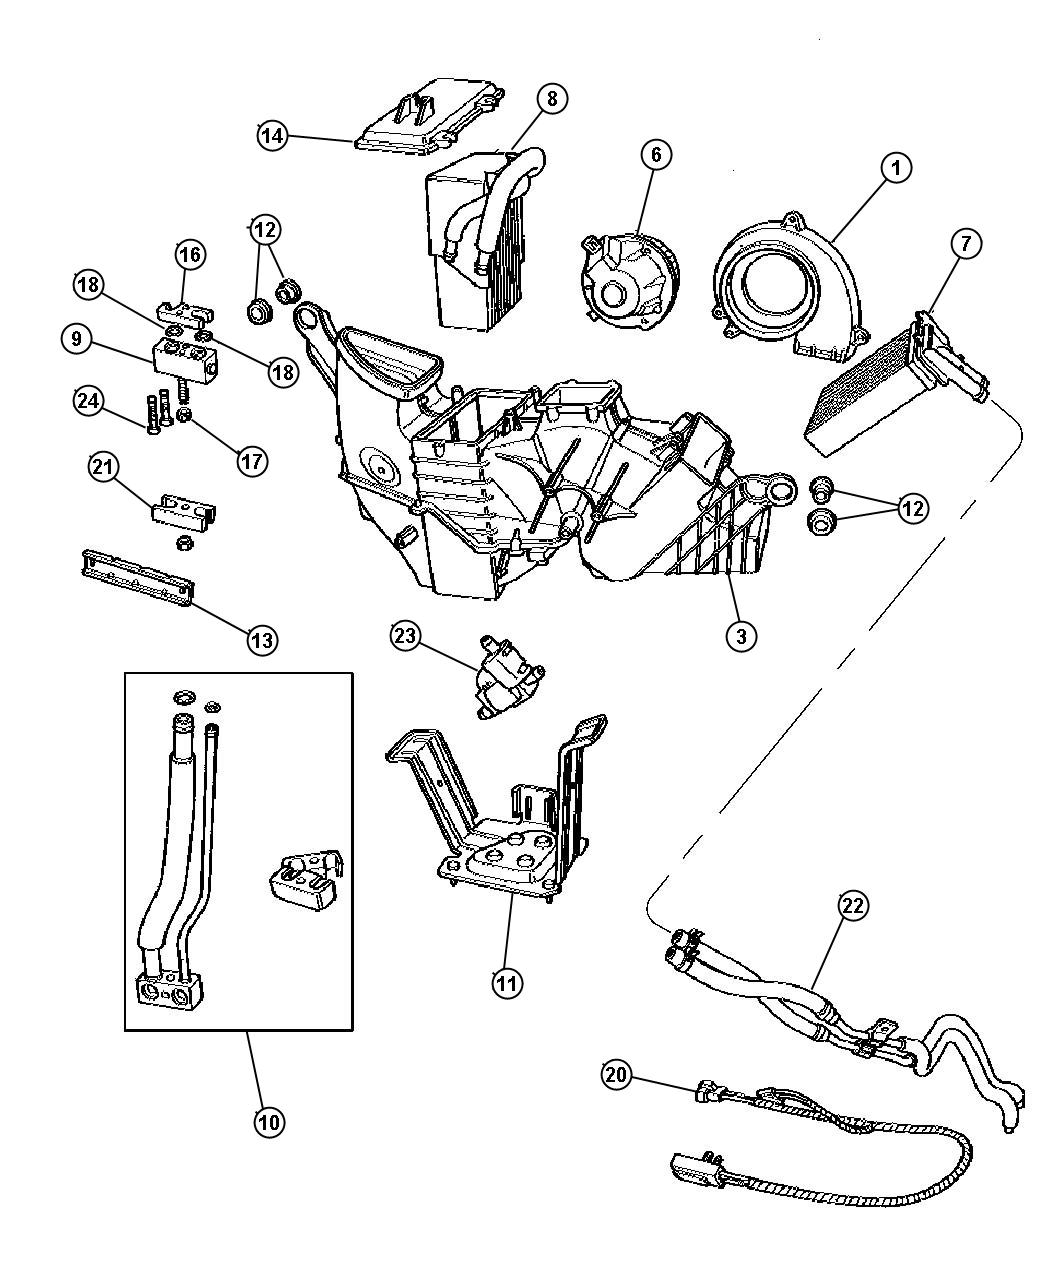 Service manual [1998 Plymouth Voyager Mode Actuator